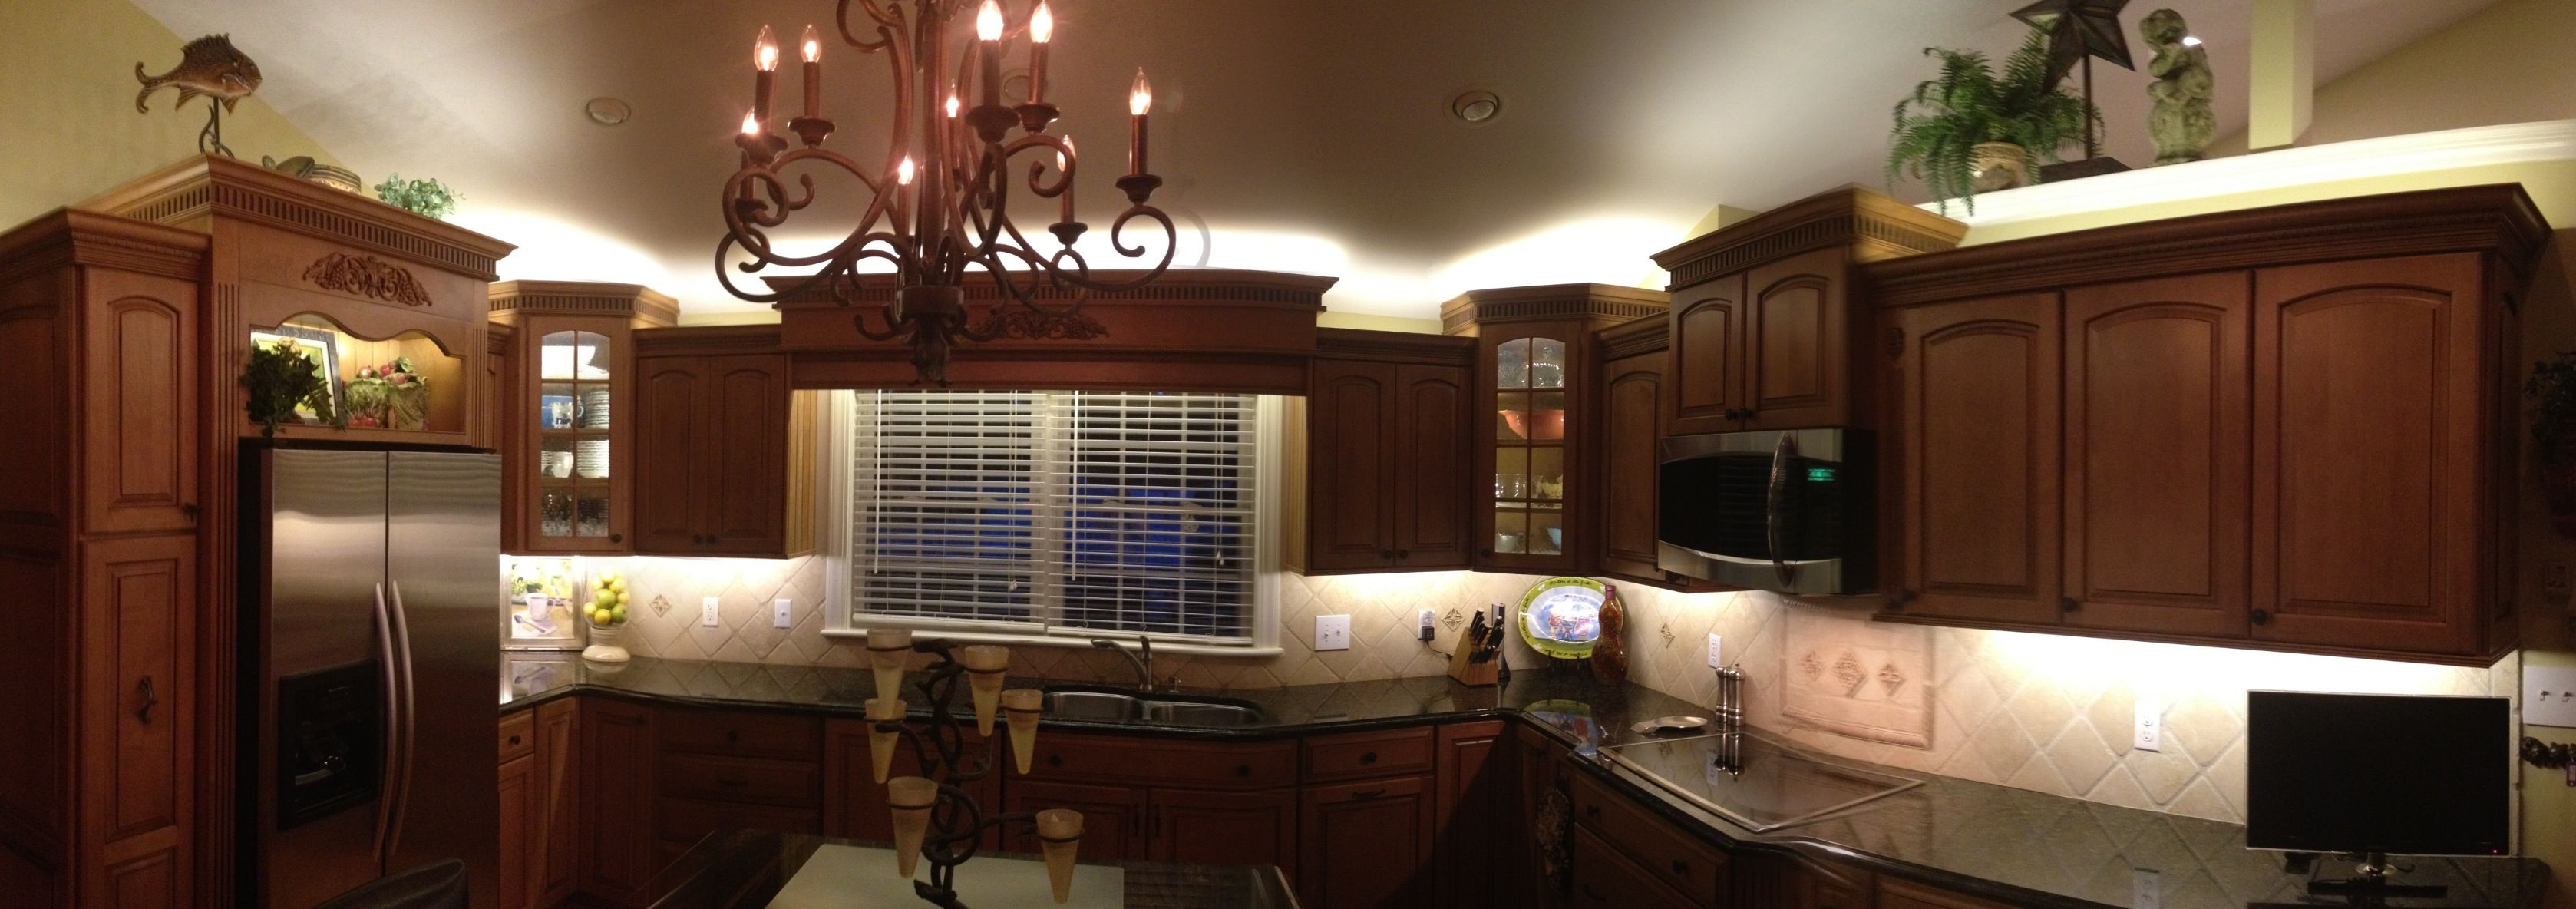 Led Kitchen Lighting And Lights Inspired Led Above Kitchen Cabinets Kitchen Cabinets Light Kitchen Cabinets